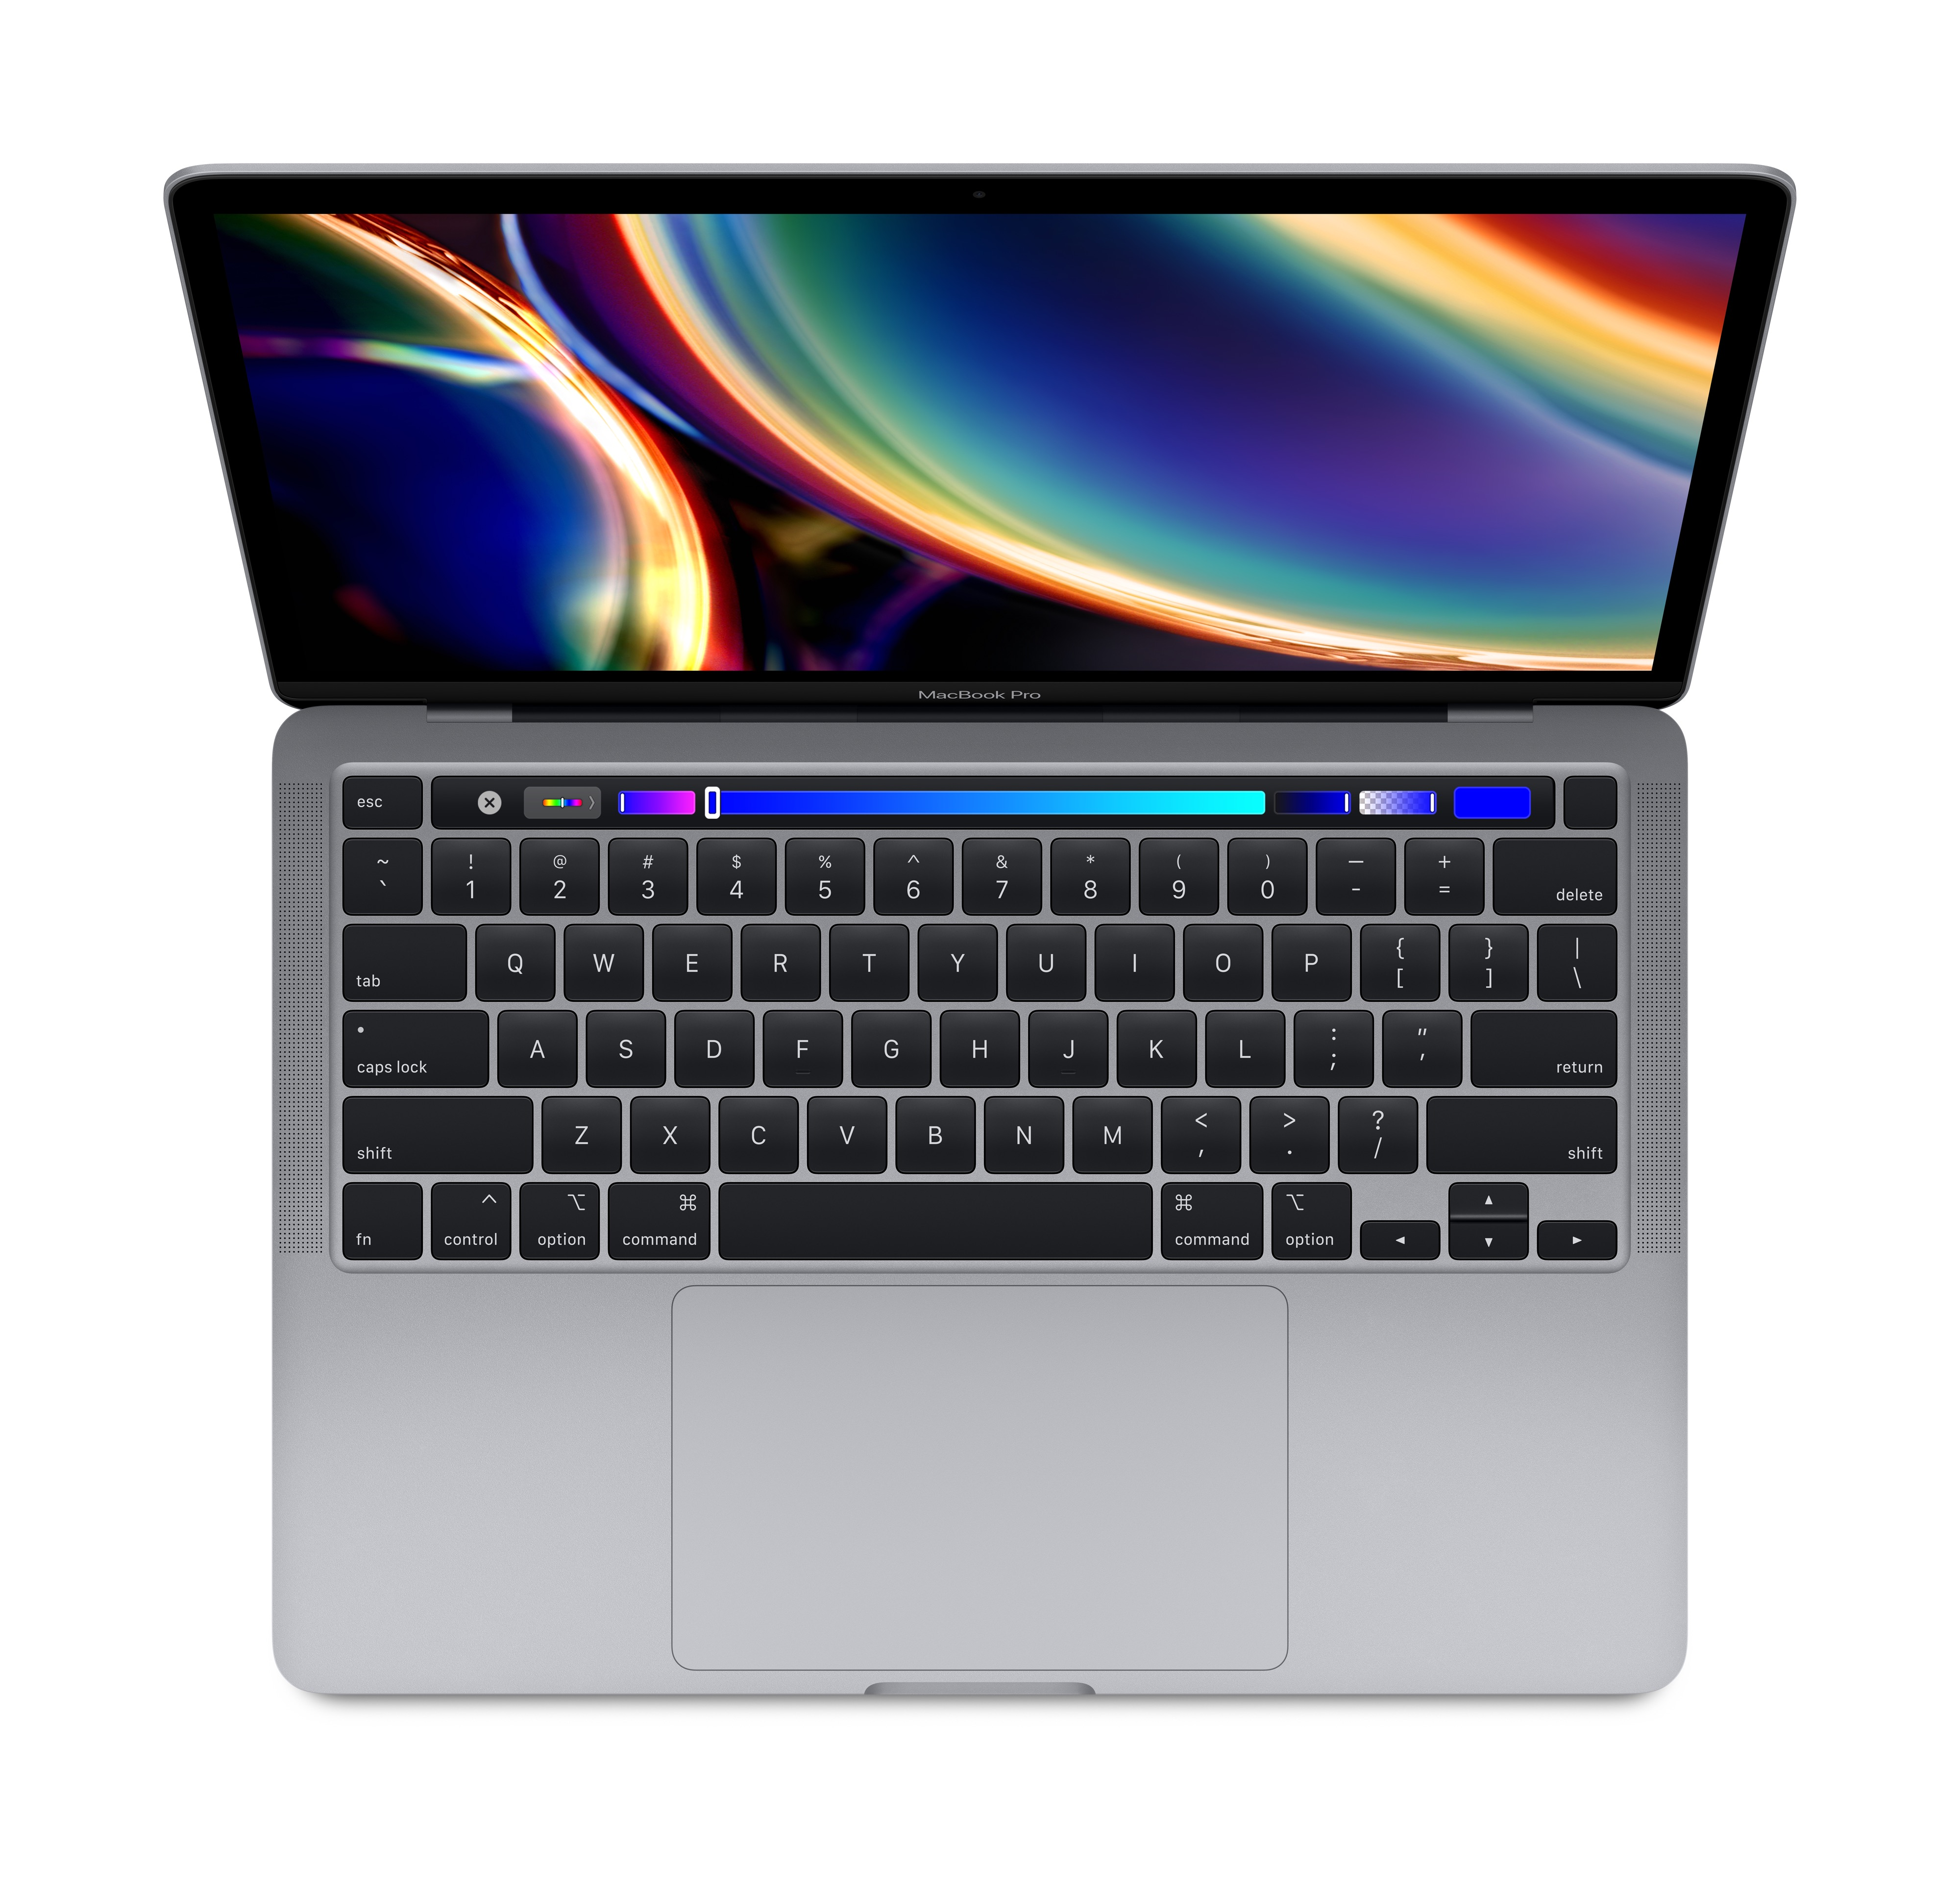 Graduation Bundle MacBook Pro M1 (Space Gray) 512GB with AppleCare+ and FREE HD at Small Dog Electronics